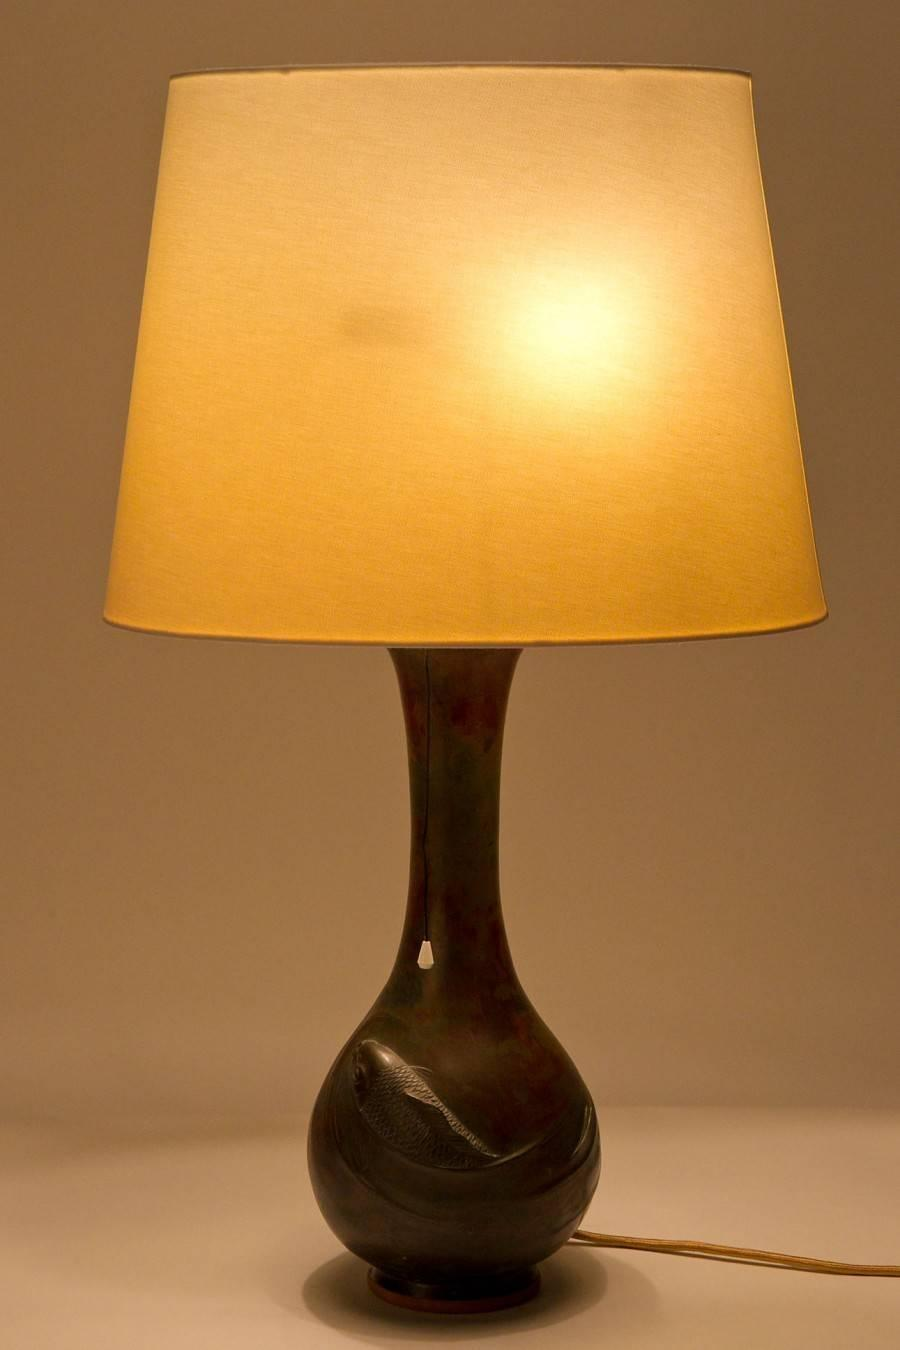 Exceptional Japanese Bronze Table Lamp 1920 At 1stdibs